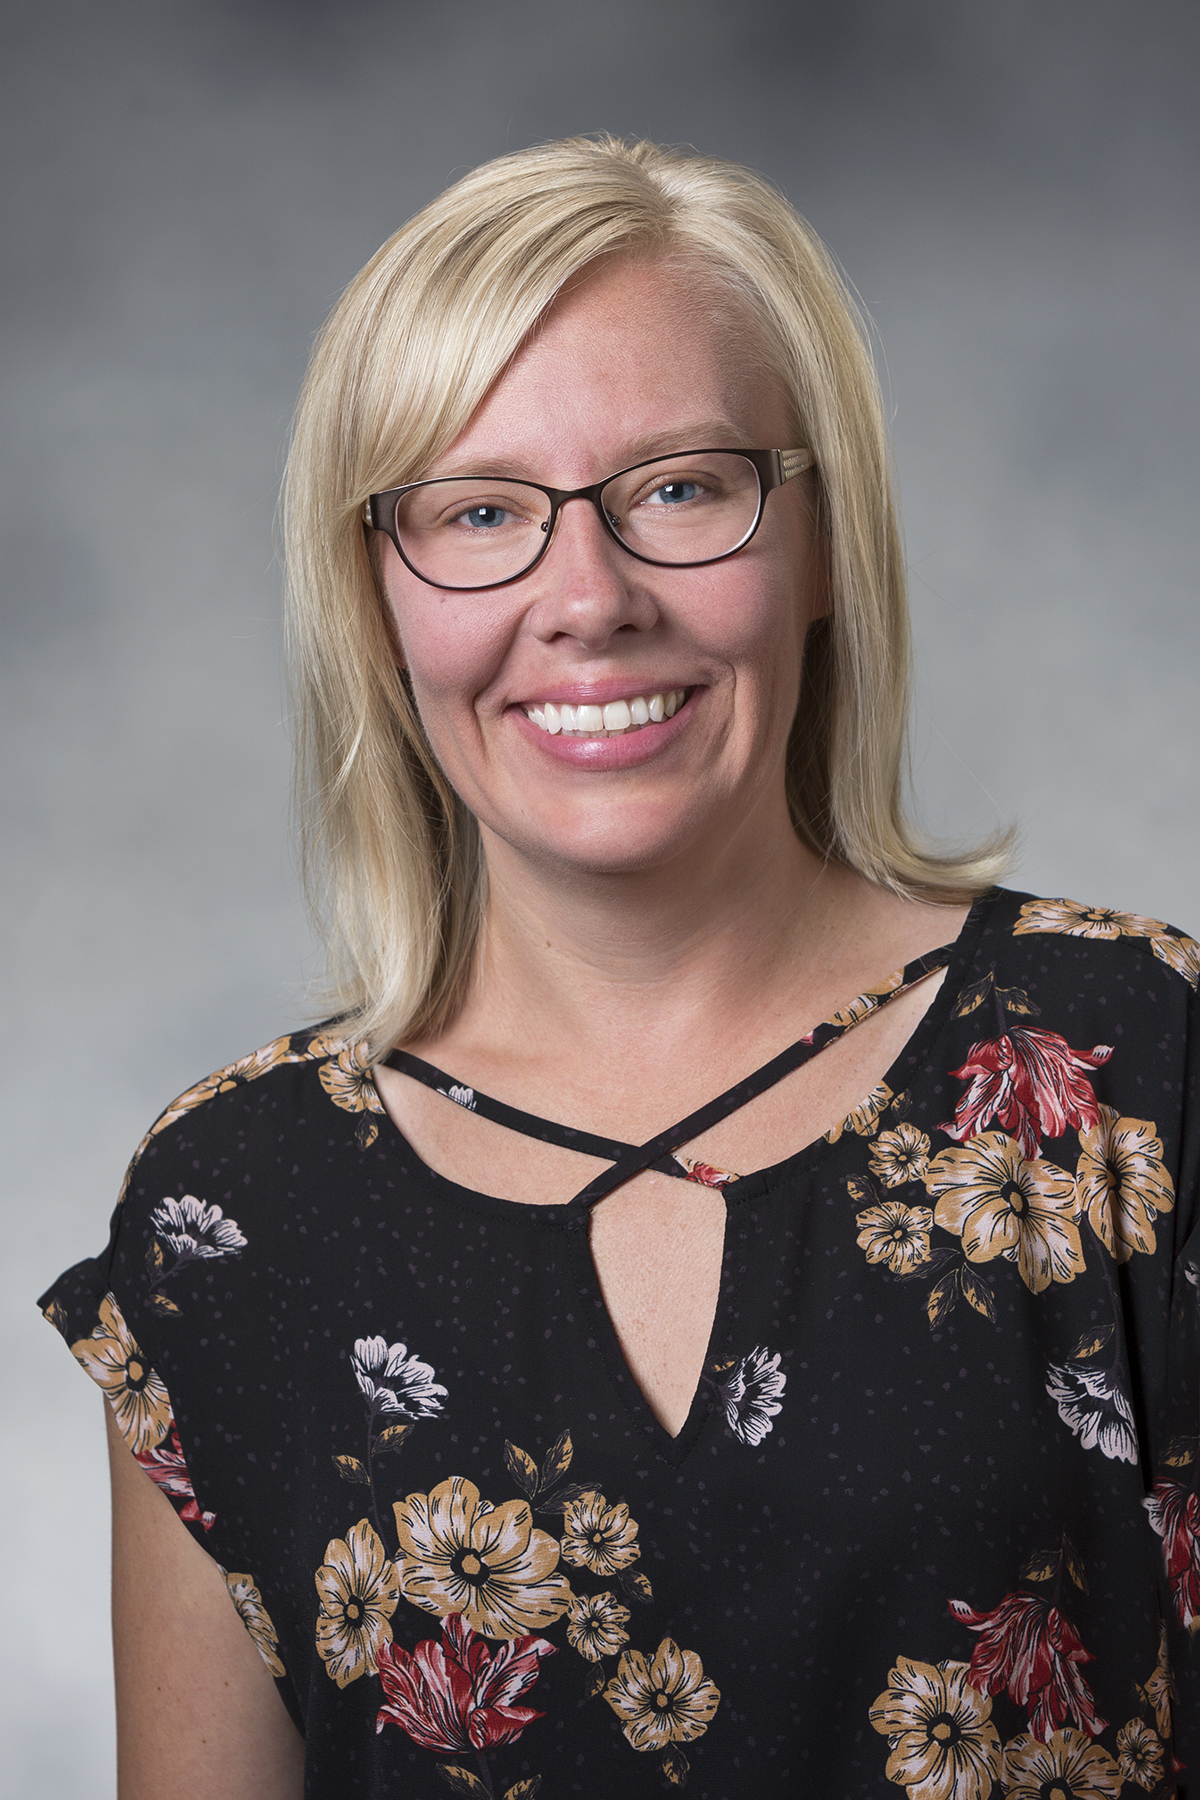 Amy Suomi, APRN, CNP, Lake View Medical Clinic